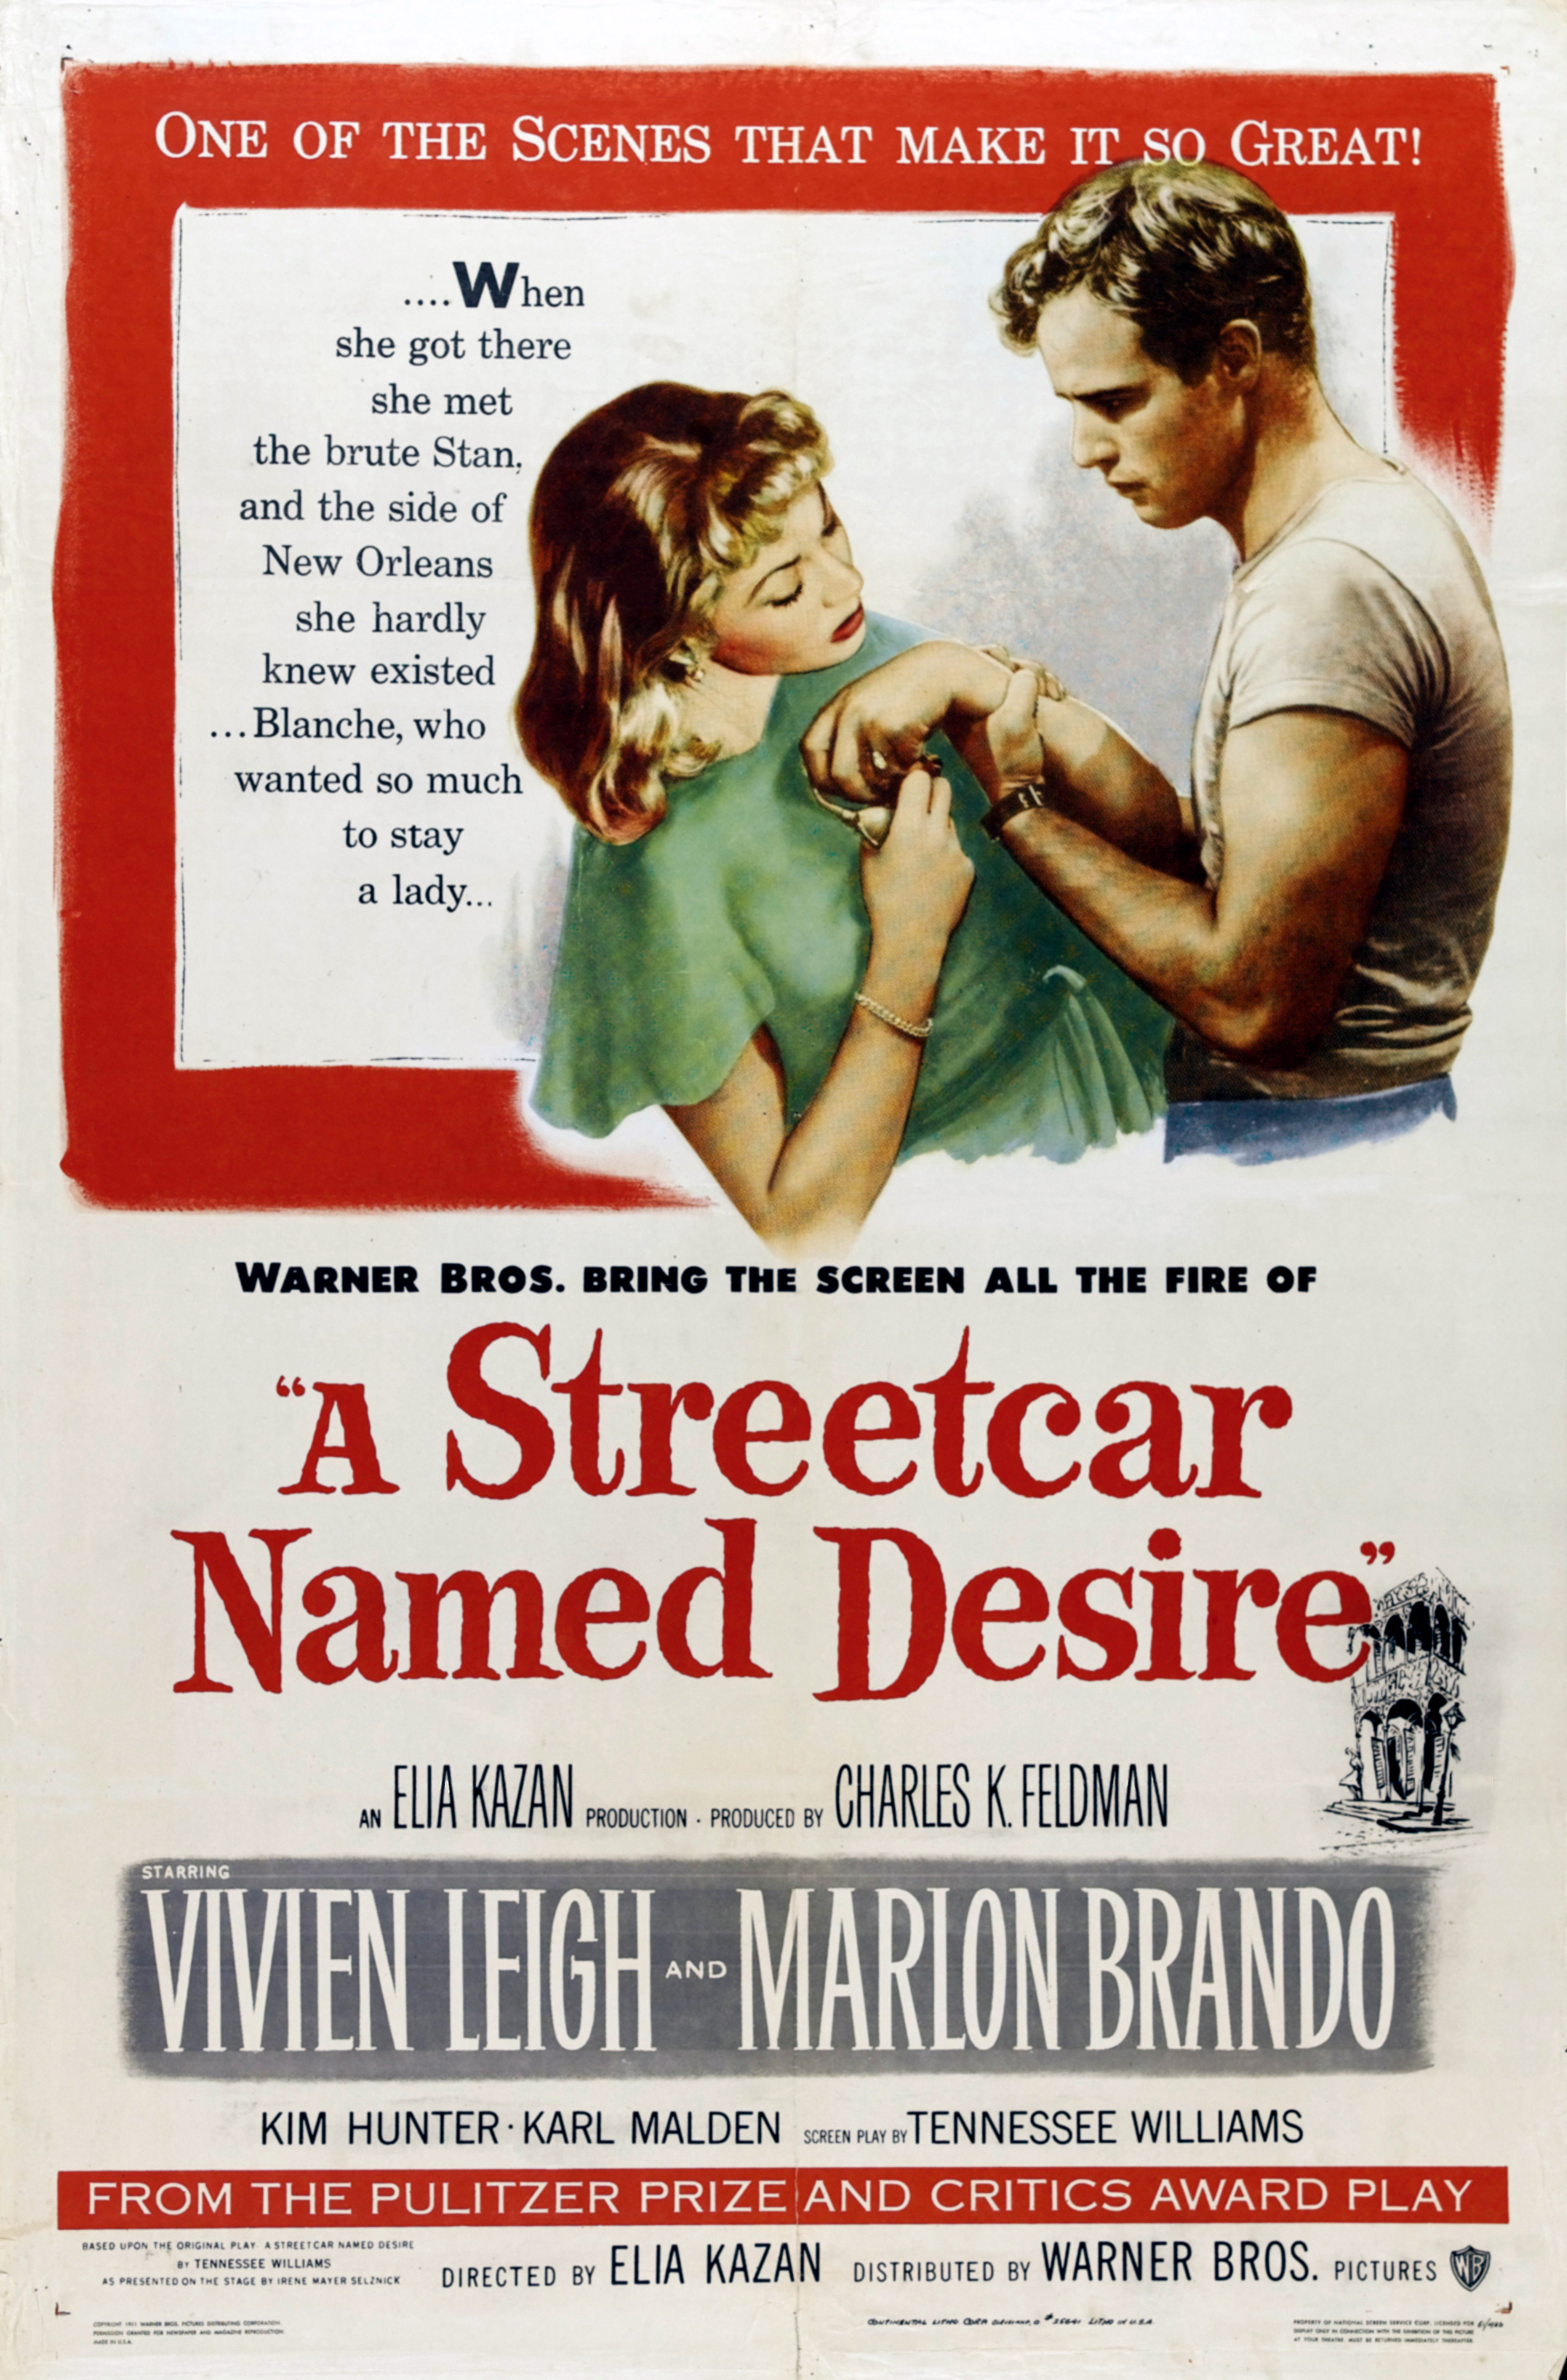 a review of the movie a streetcar named desire Find helpful customer reviews and review ratings for streetcar named desire at amazoncom read honest and unbiased product reviews from our users.